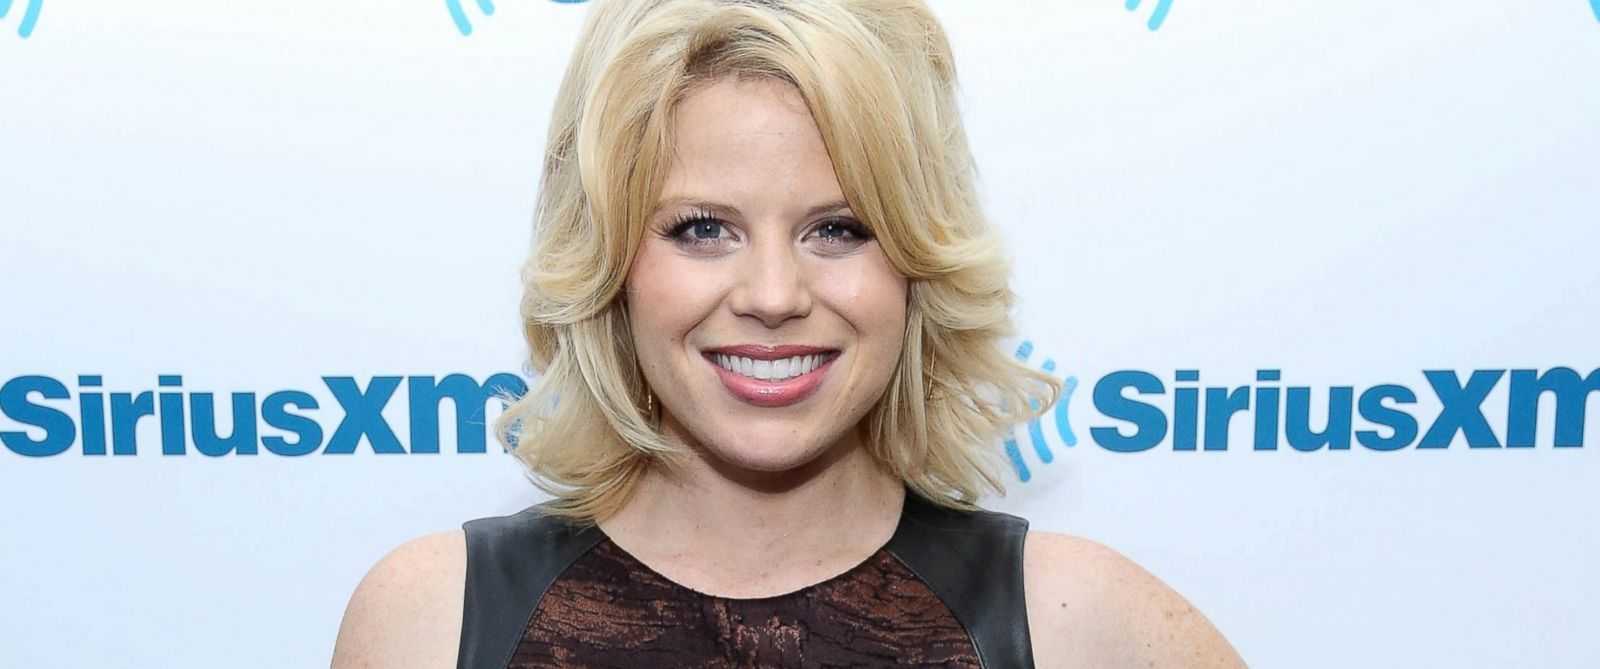 PHOTO: Megan Hilty visits at SiriusXM Studios, April 30, 2014, in New York City.